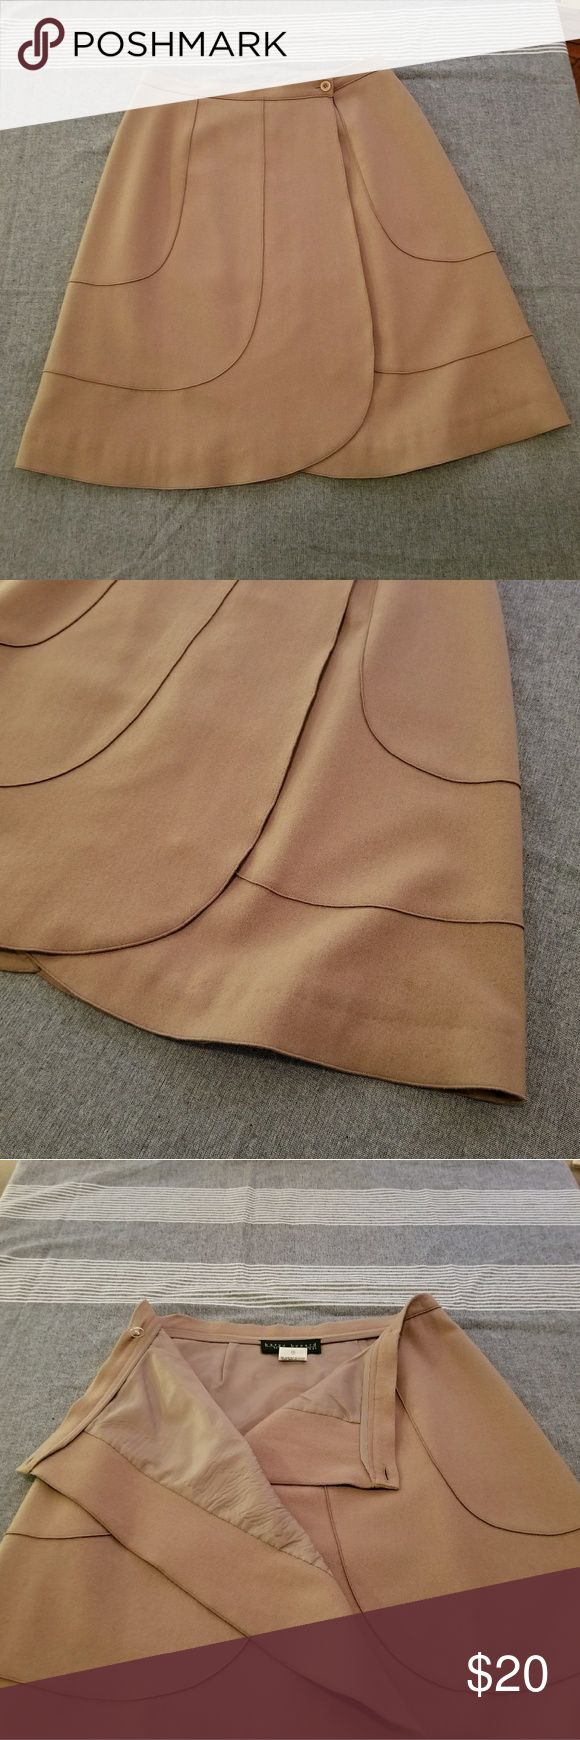 Harve Benard Camel Skirt w Piping Detail Are you thinking of starting a one woman detective agency? Well, this is the skirt for you.  Knee length, wrap style DARLING wool/viscose, fully lined, camel color skirt by Harve' Benard. One blemish on the back as shown. Good used condition. Harve Benard Skirts A-Line or Full